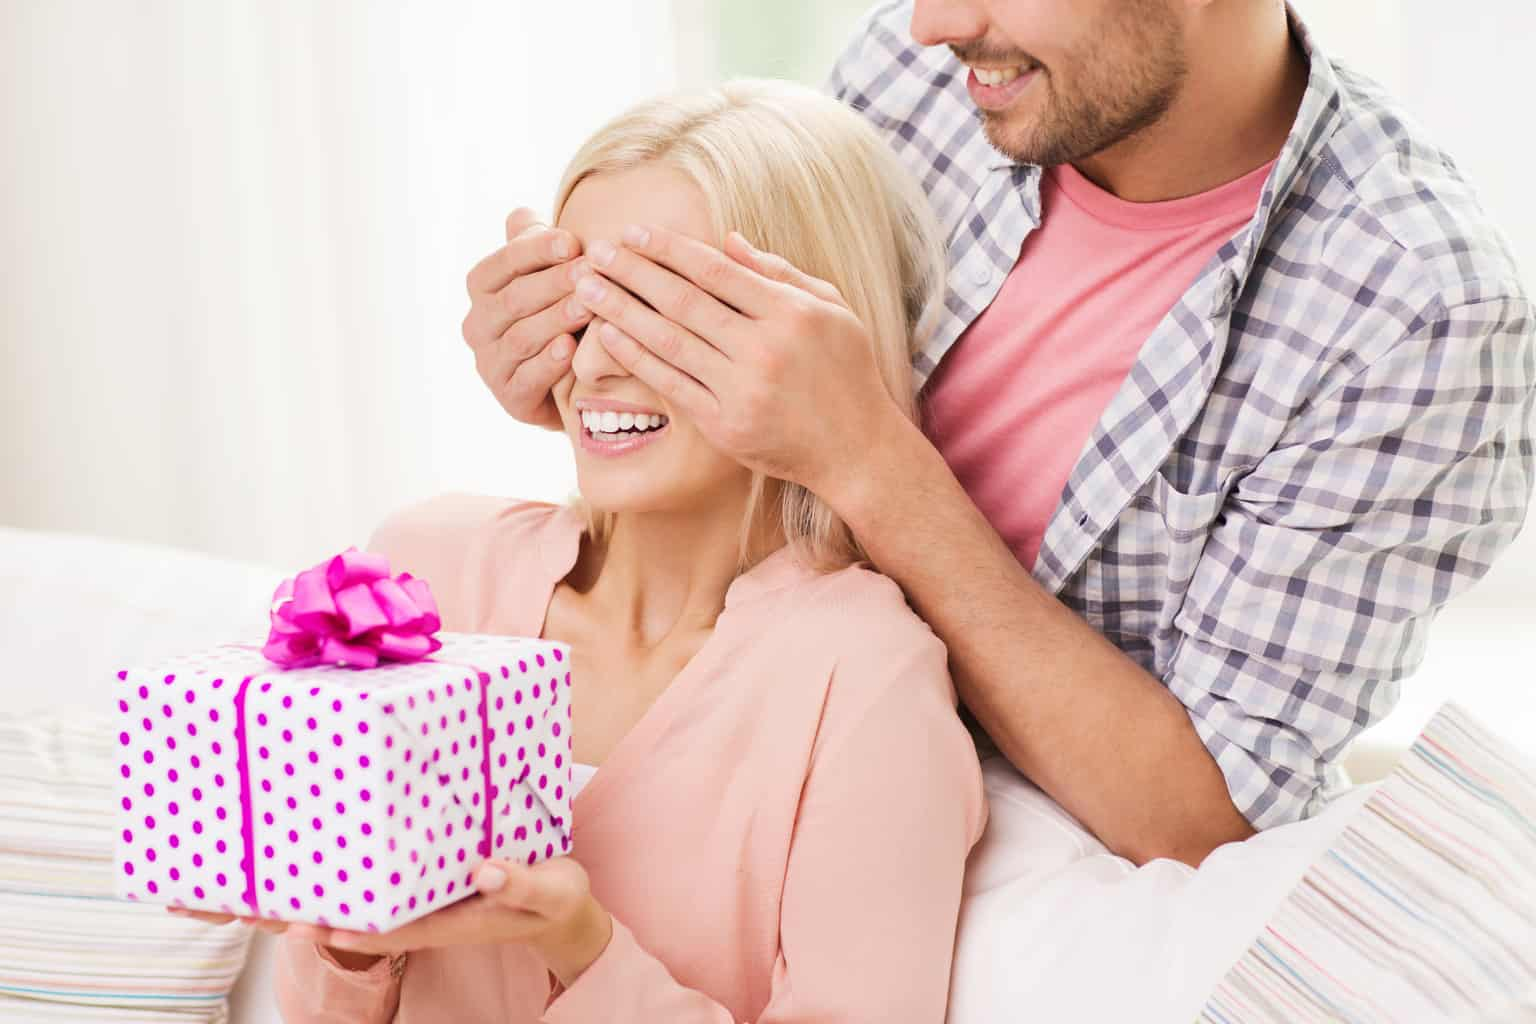 a list of gifts for the woman who has everything